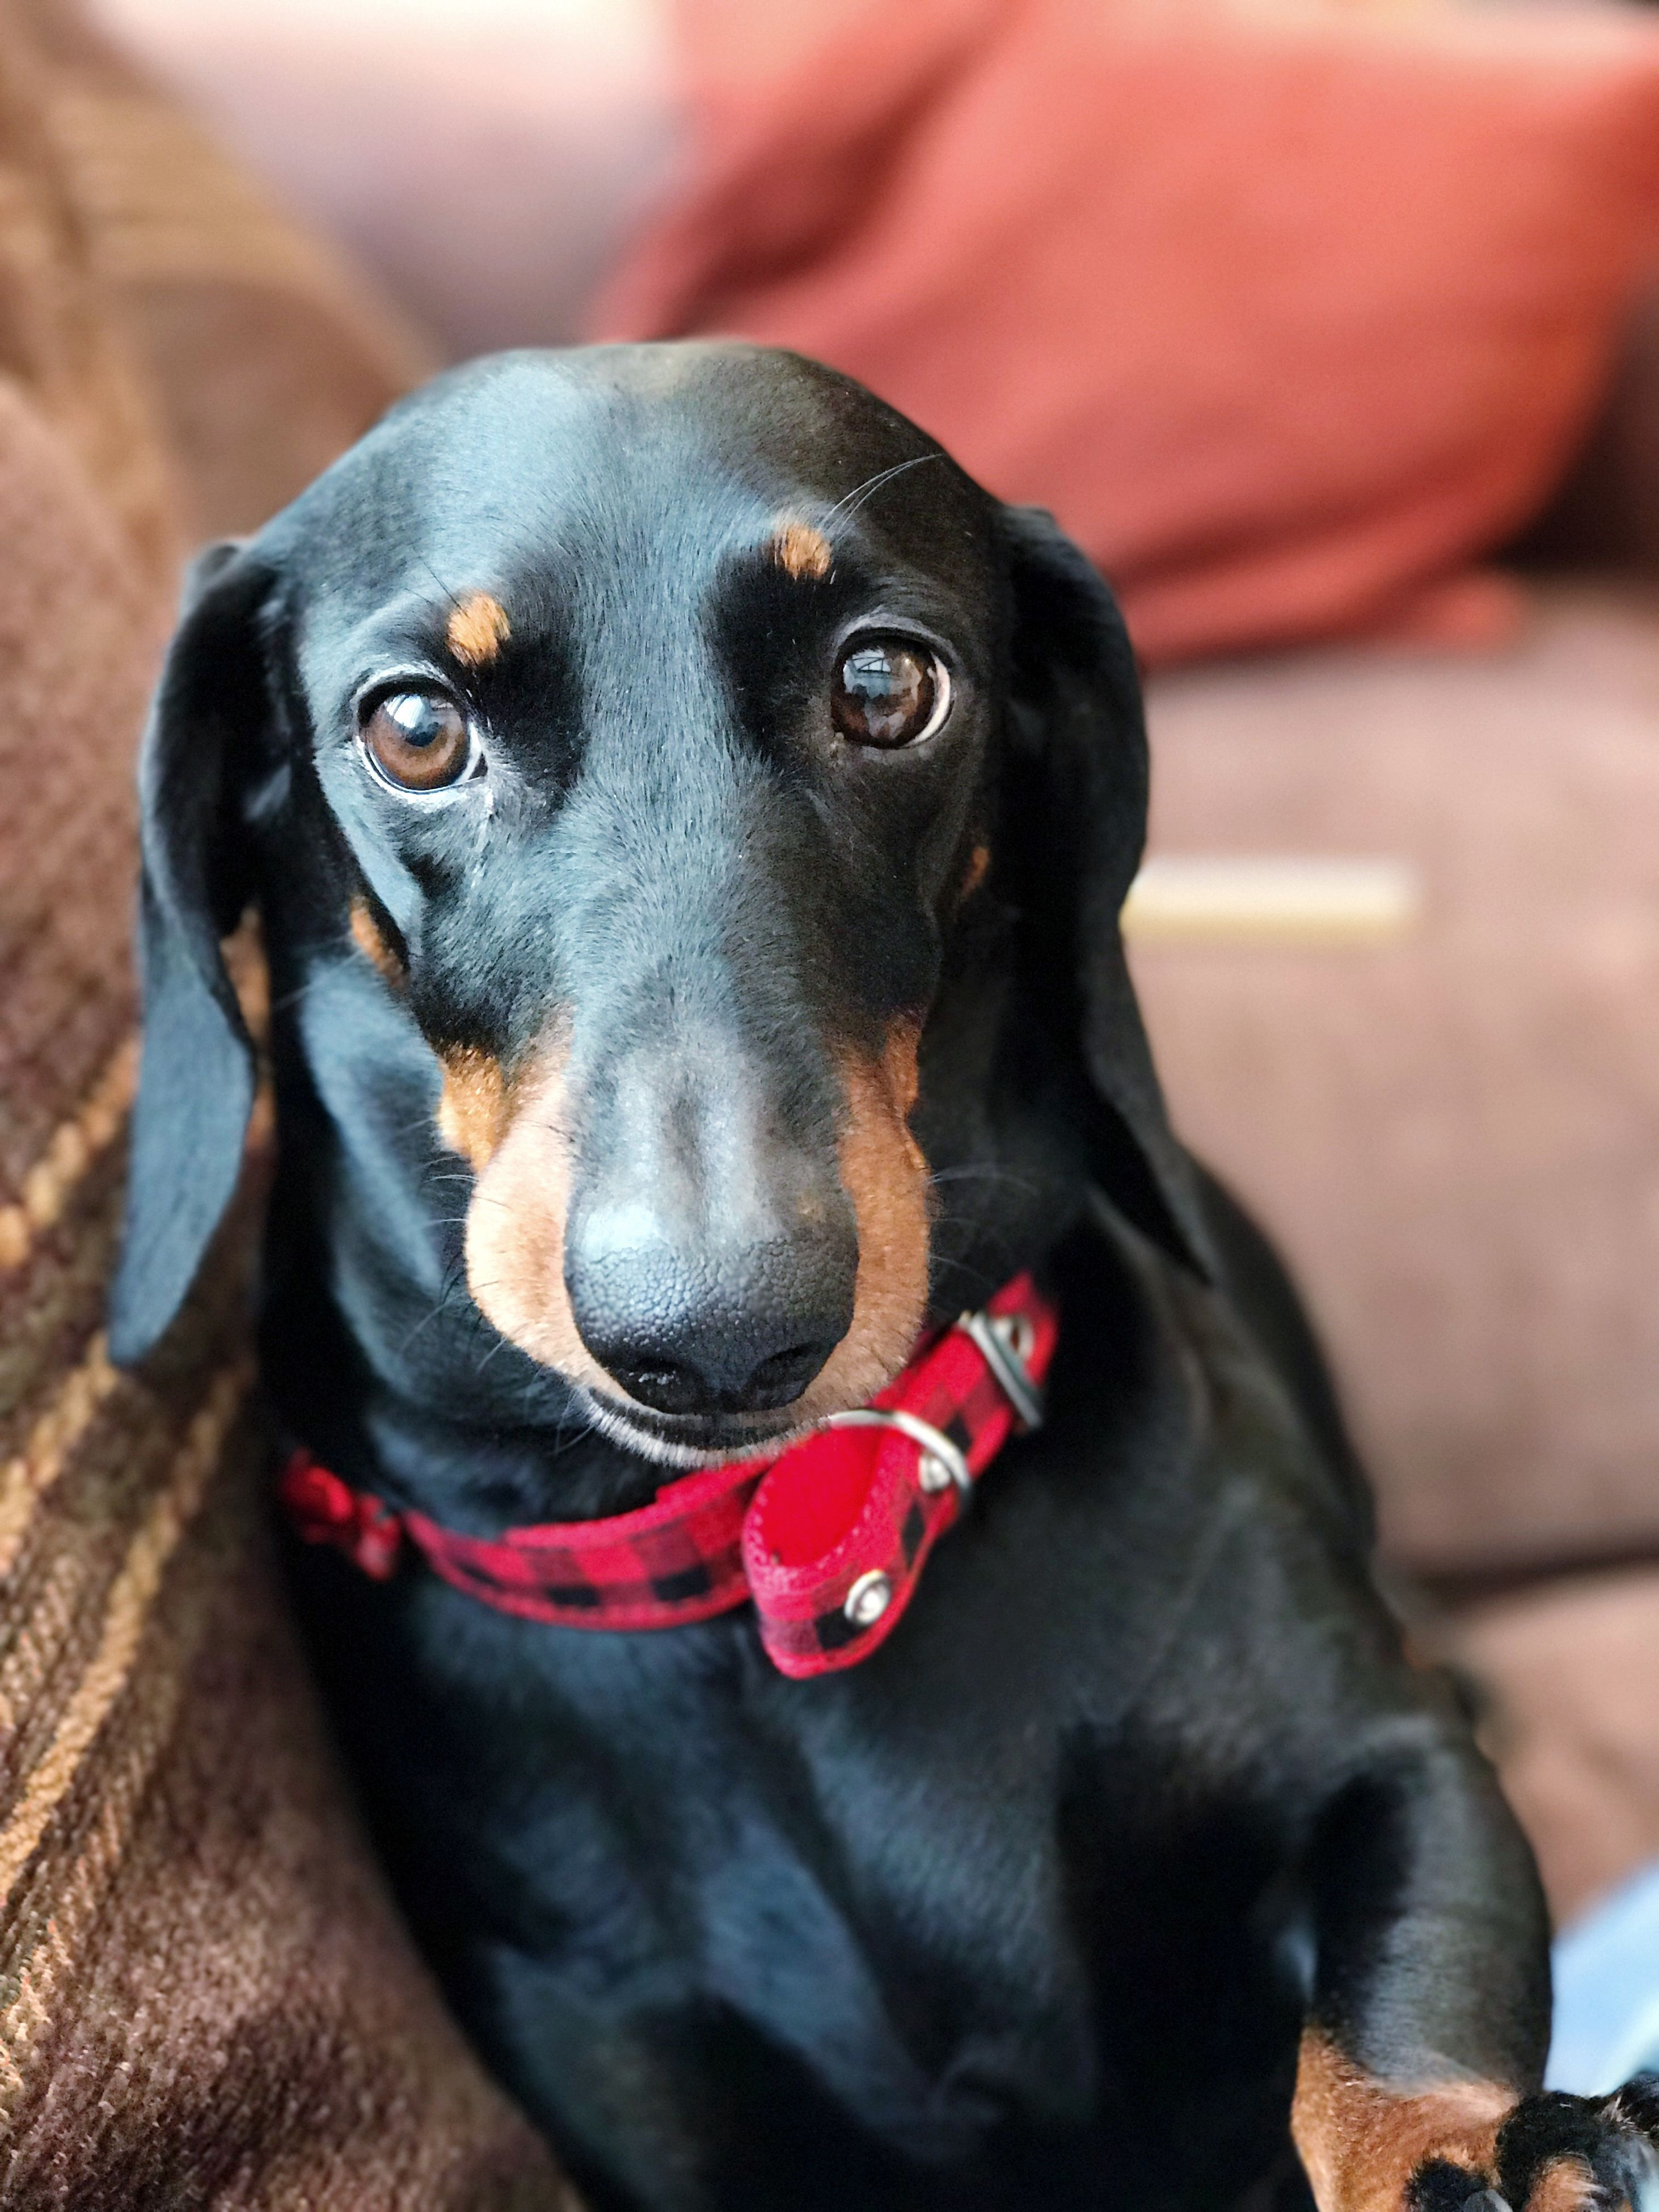 pets, dog, one animal, domestic animals, mammal, animal themes, close-up, black color, portrait, no people, black labrador, day, dachshund, pet clothing, outdoors